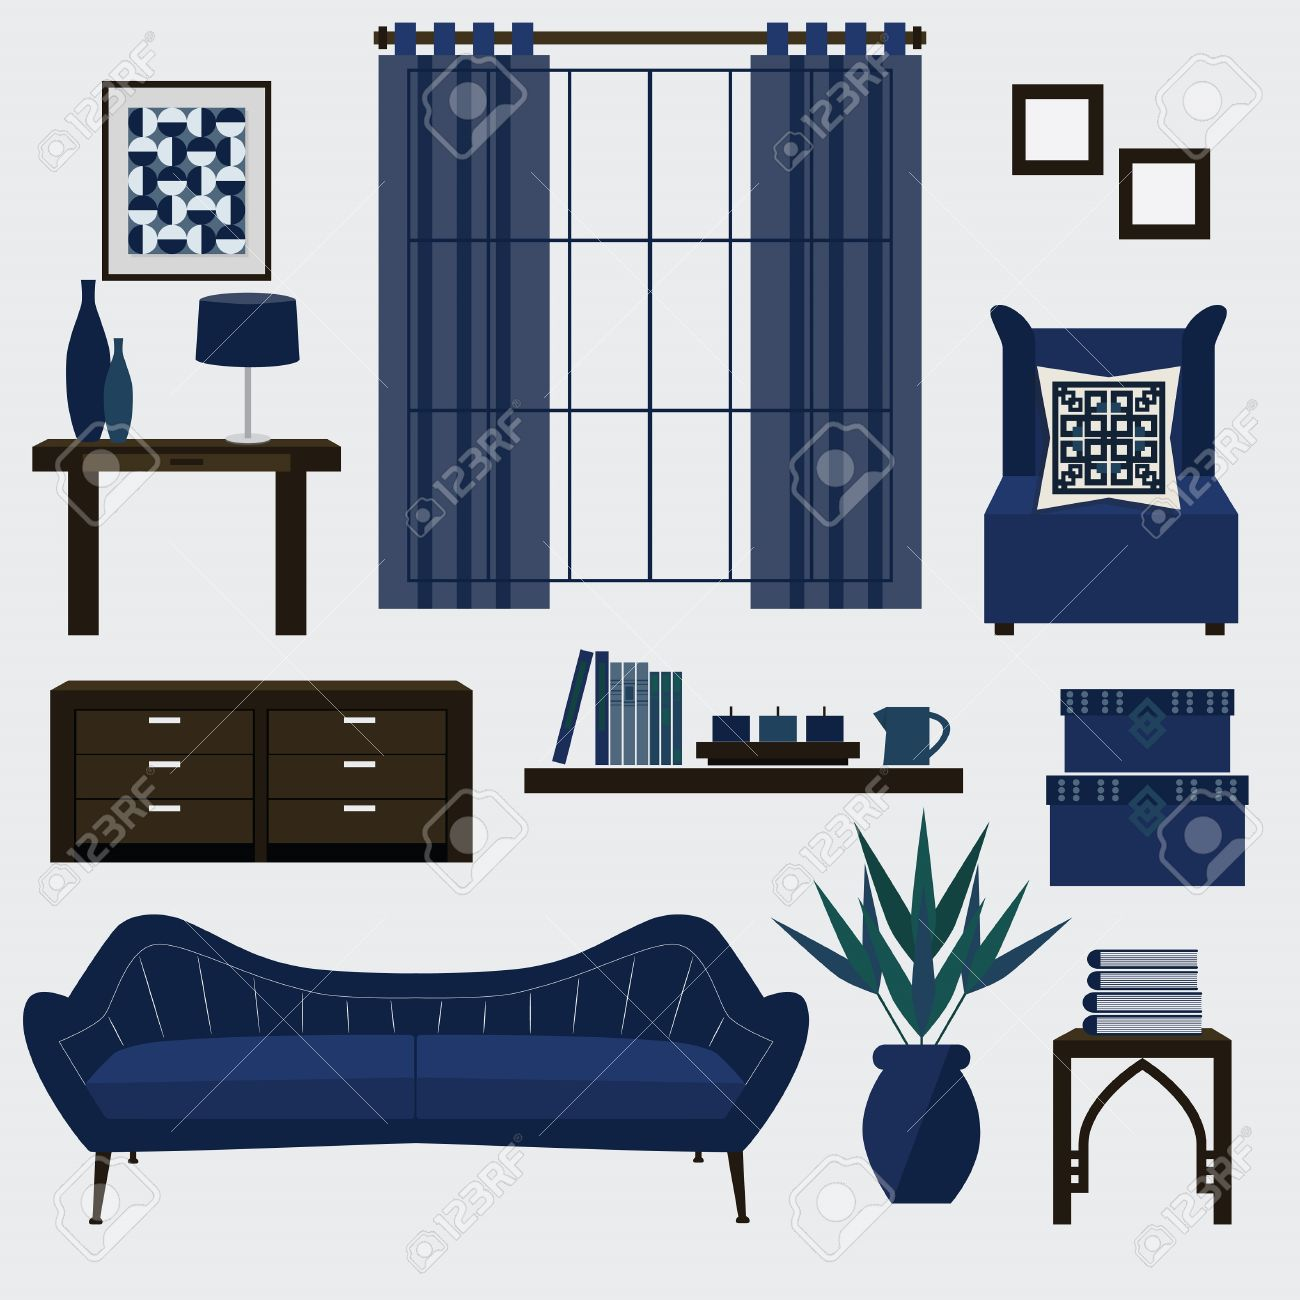 Living room furniture and accessories in color navy blue Stock Vector    34909437. Living Room Furniture And Accessories In Color Navy Blue Royalty